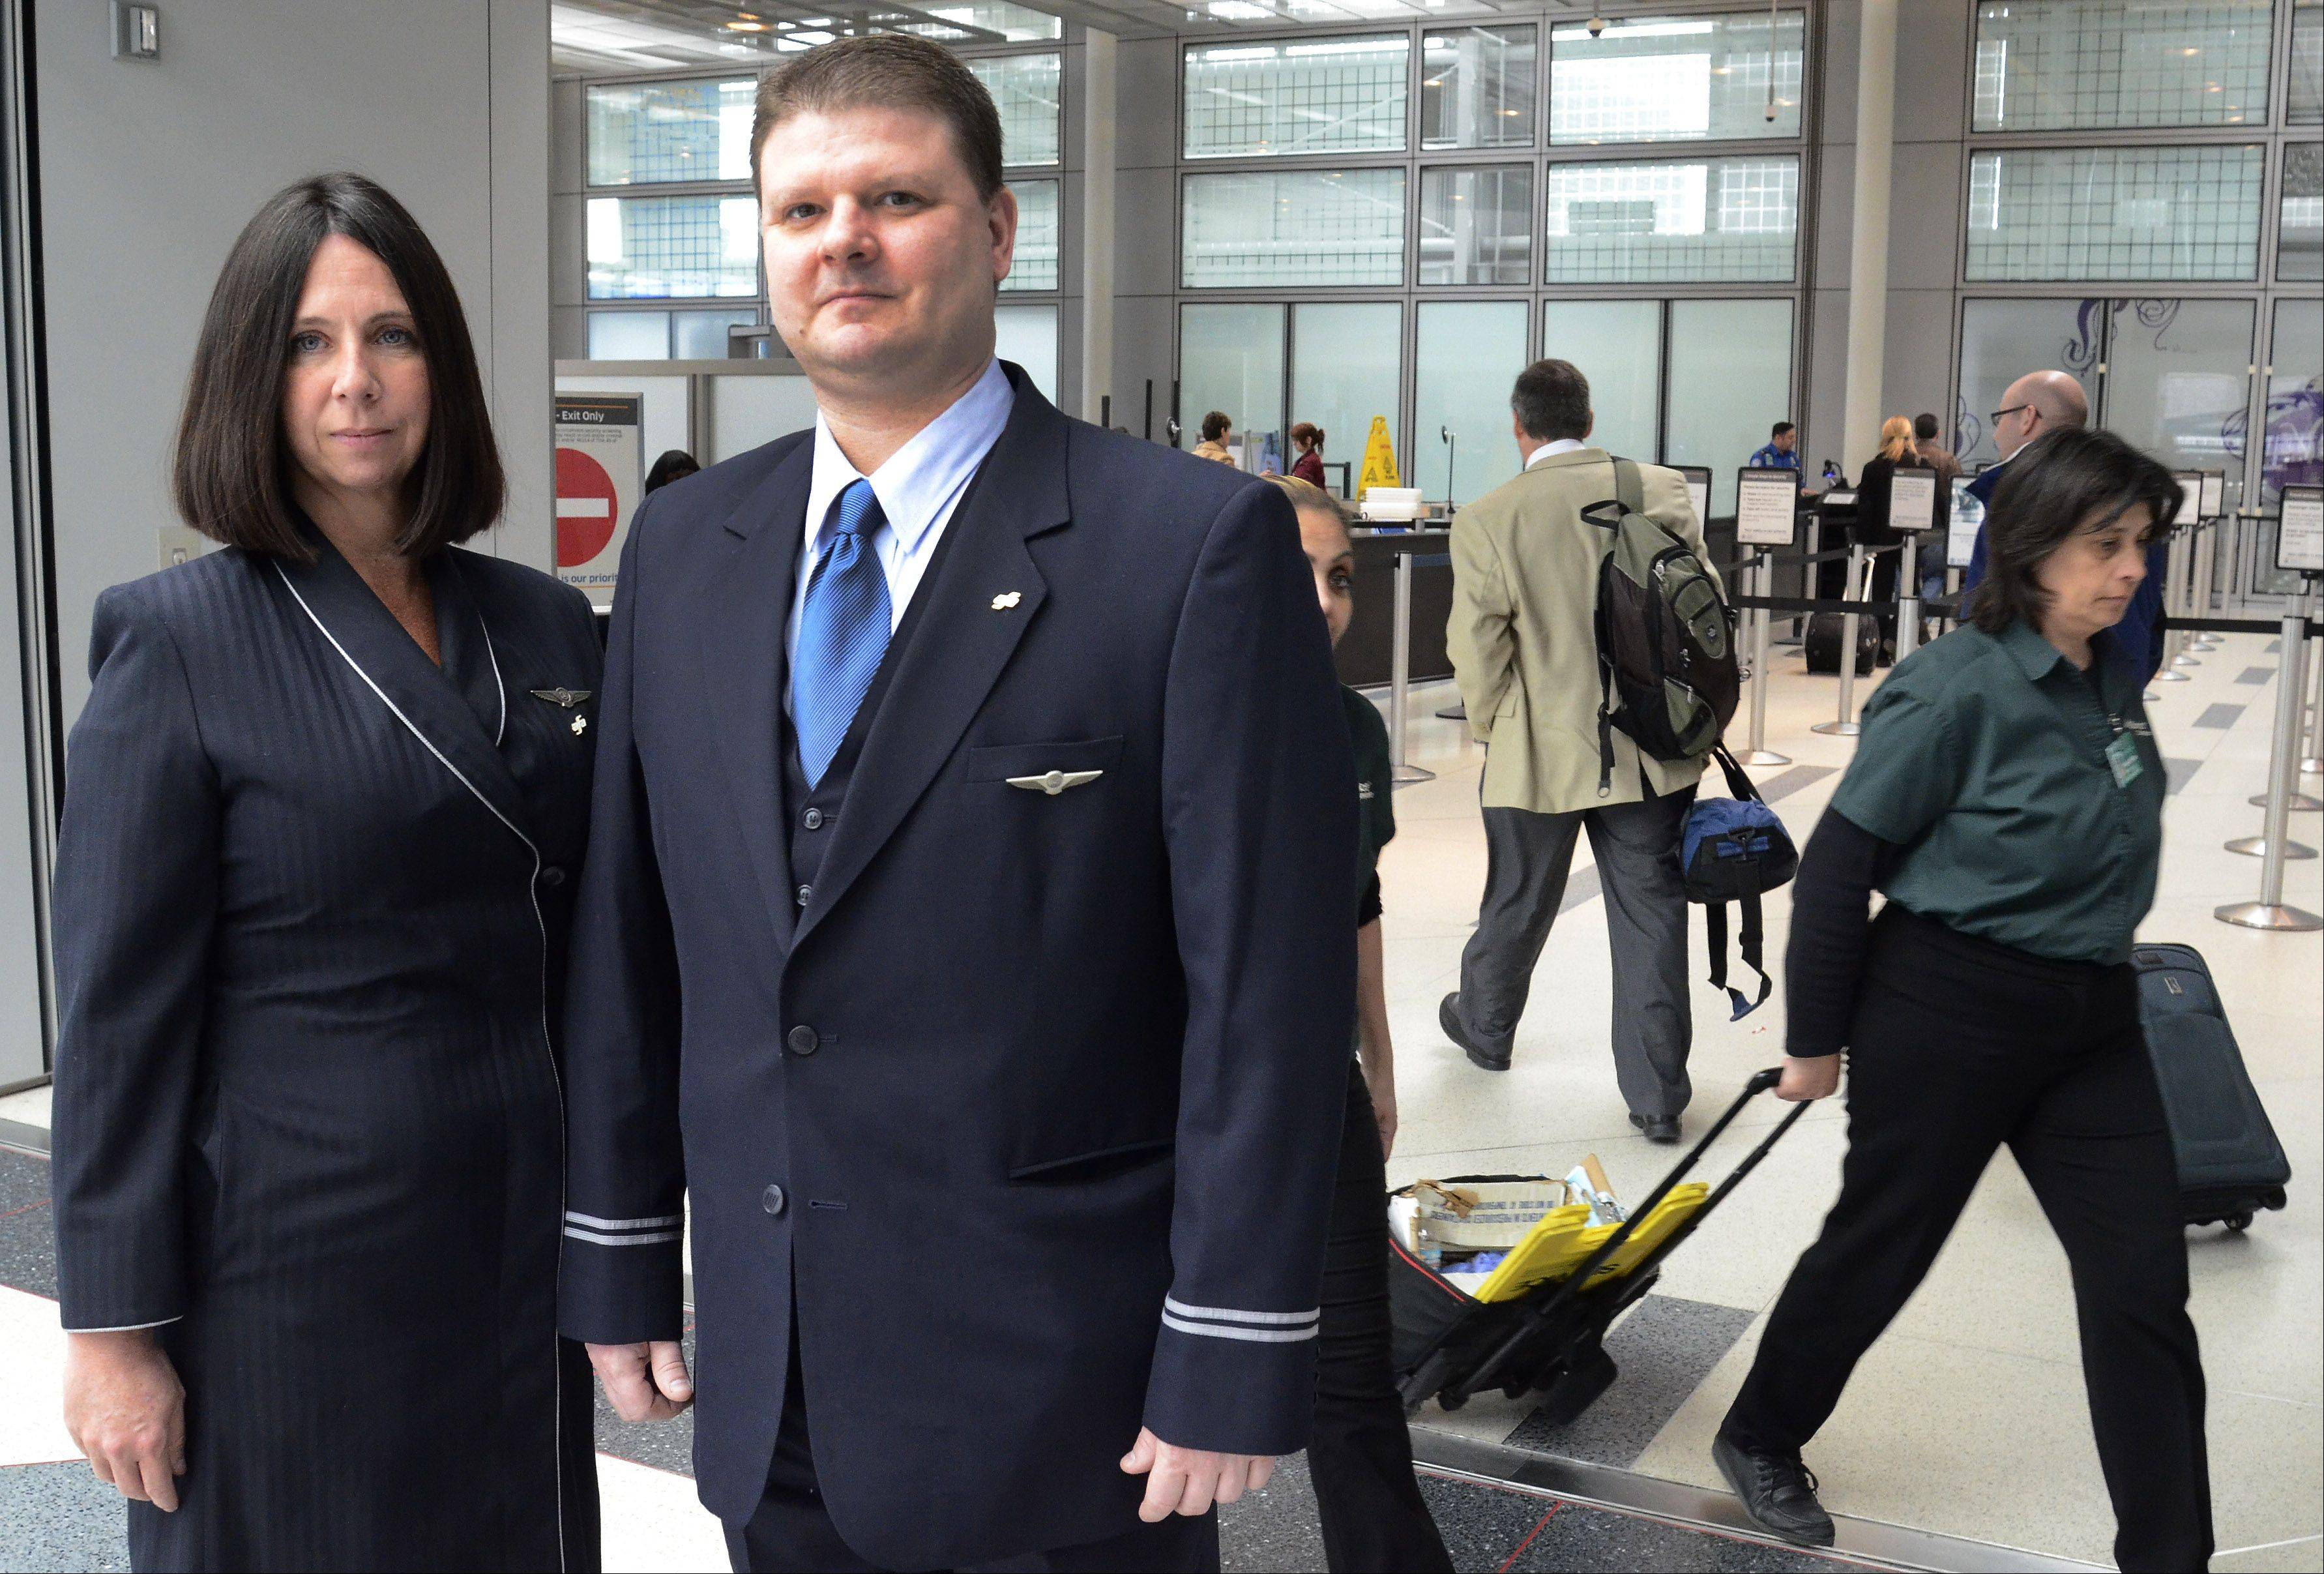 Flight attendants T.J. Sesko and Vicki Jurgens oppose TSA rule changes allowing people to bring pocketknives onboard planes.